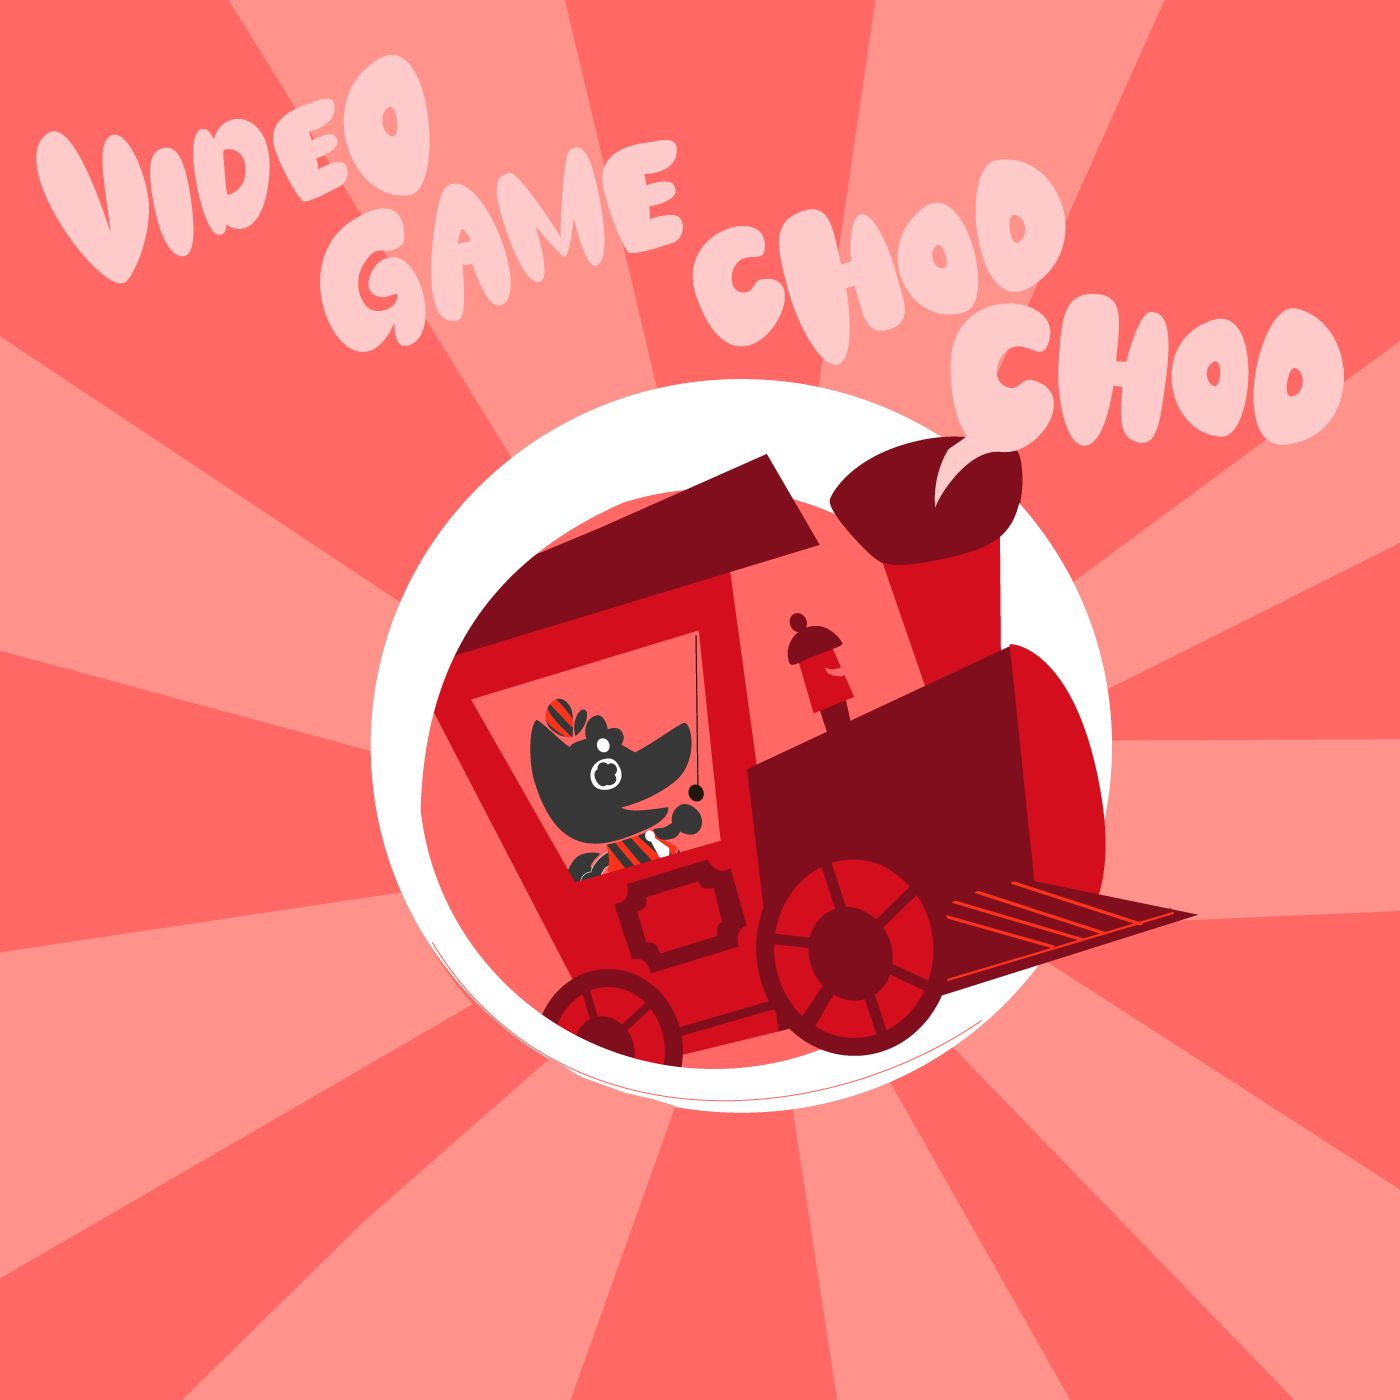 Video Game Choo Choo